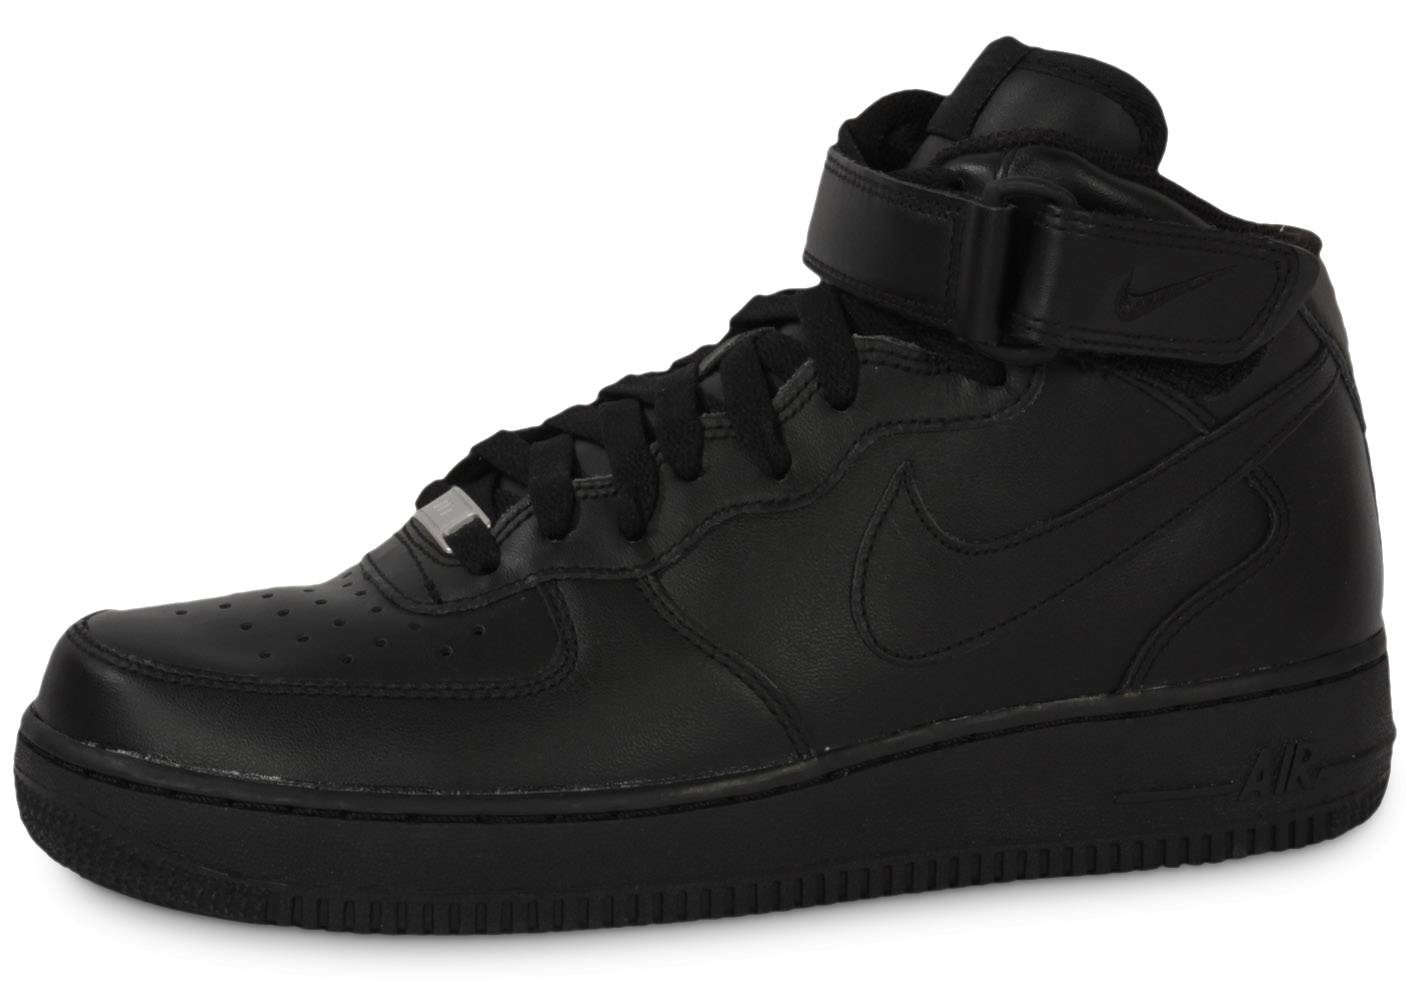 Nike Homme Air Force 1 Mid 07 Noire Baskets 42